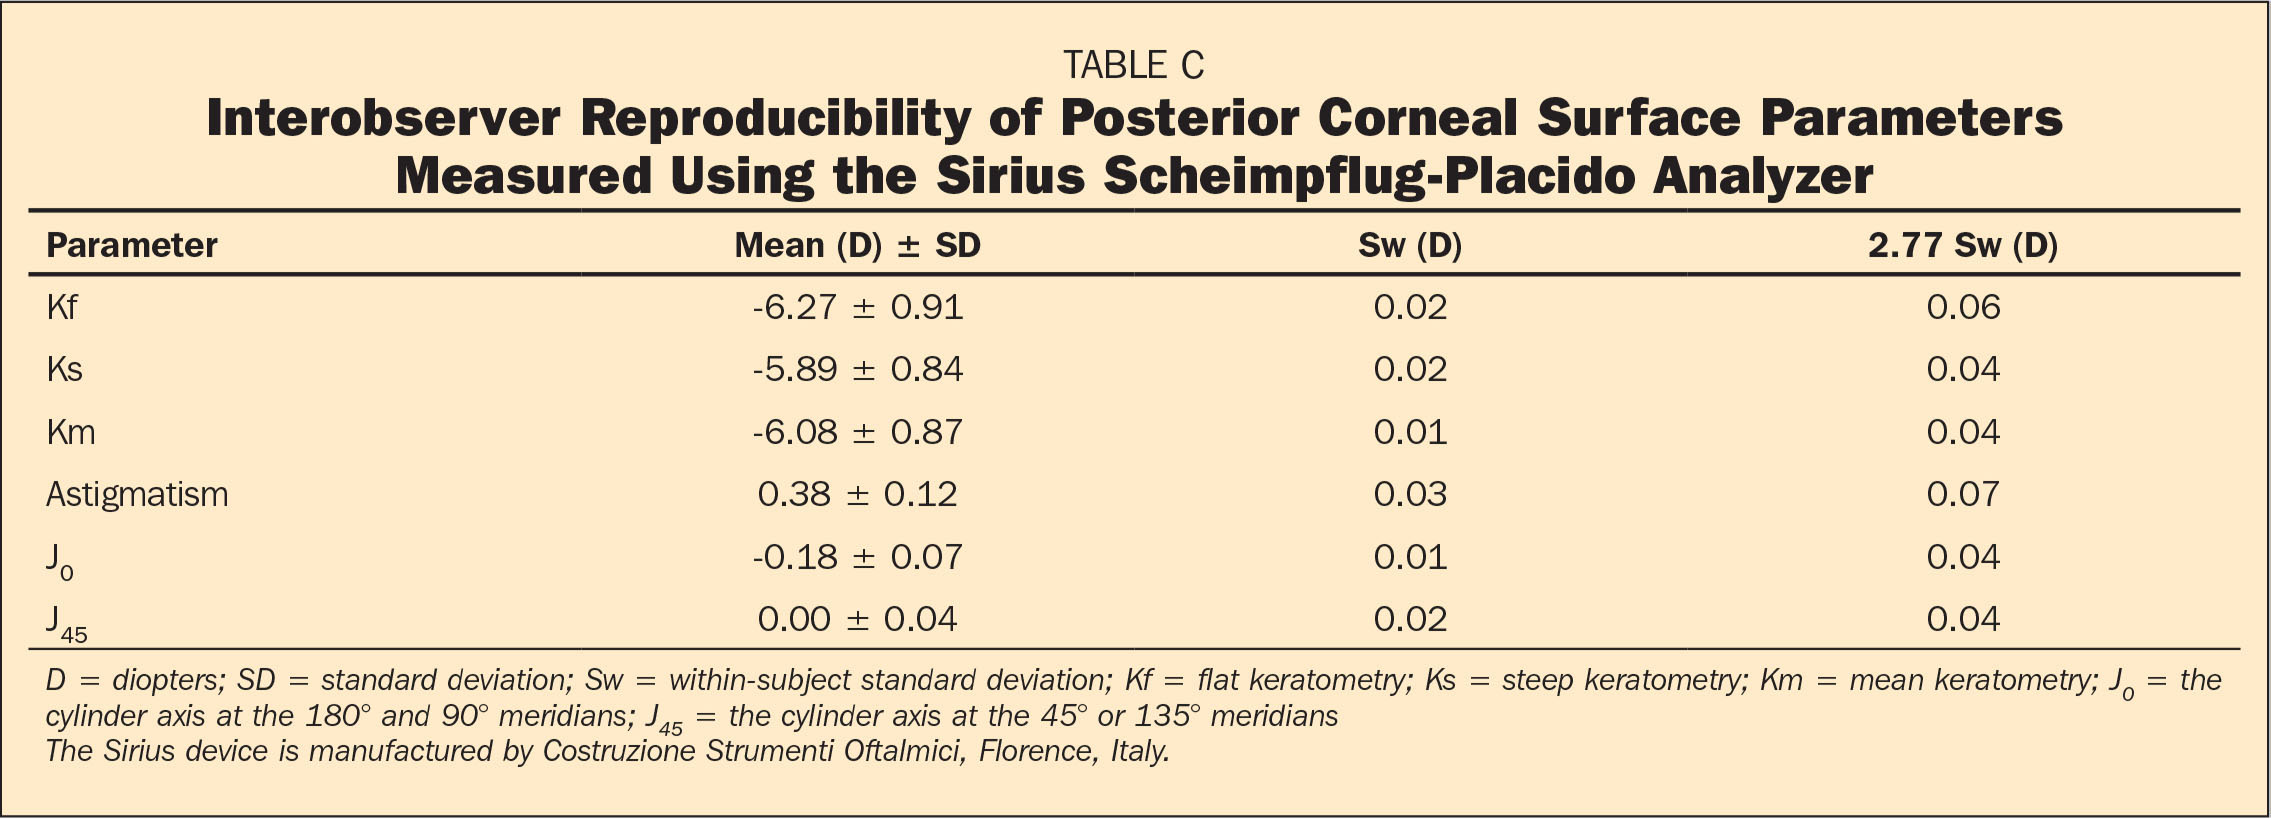 Interobserver Reproducibility of Posterior Corneal Surface Parameters Measured Using the Sirius Scheimpflug-Placido Analyzer